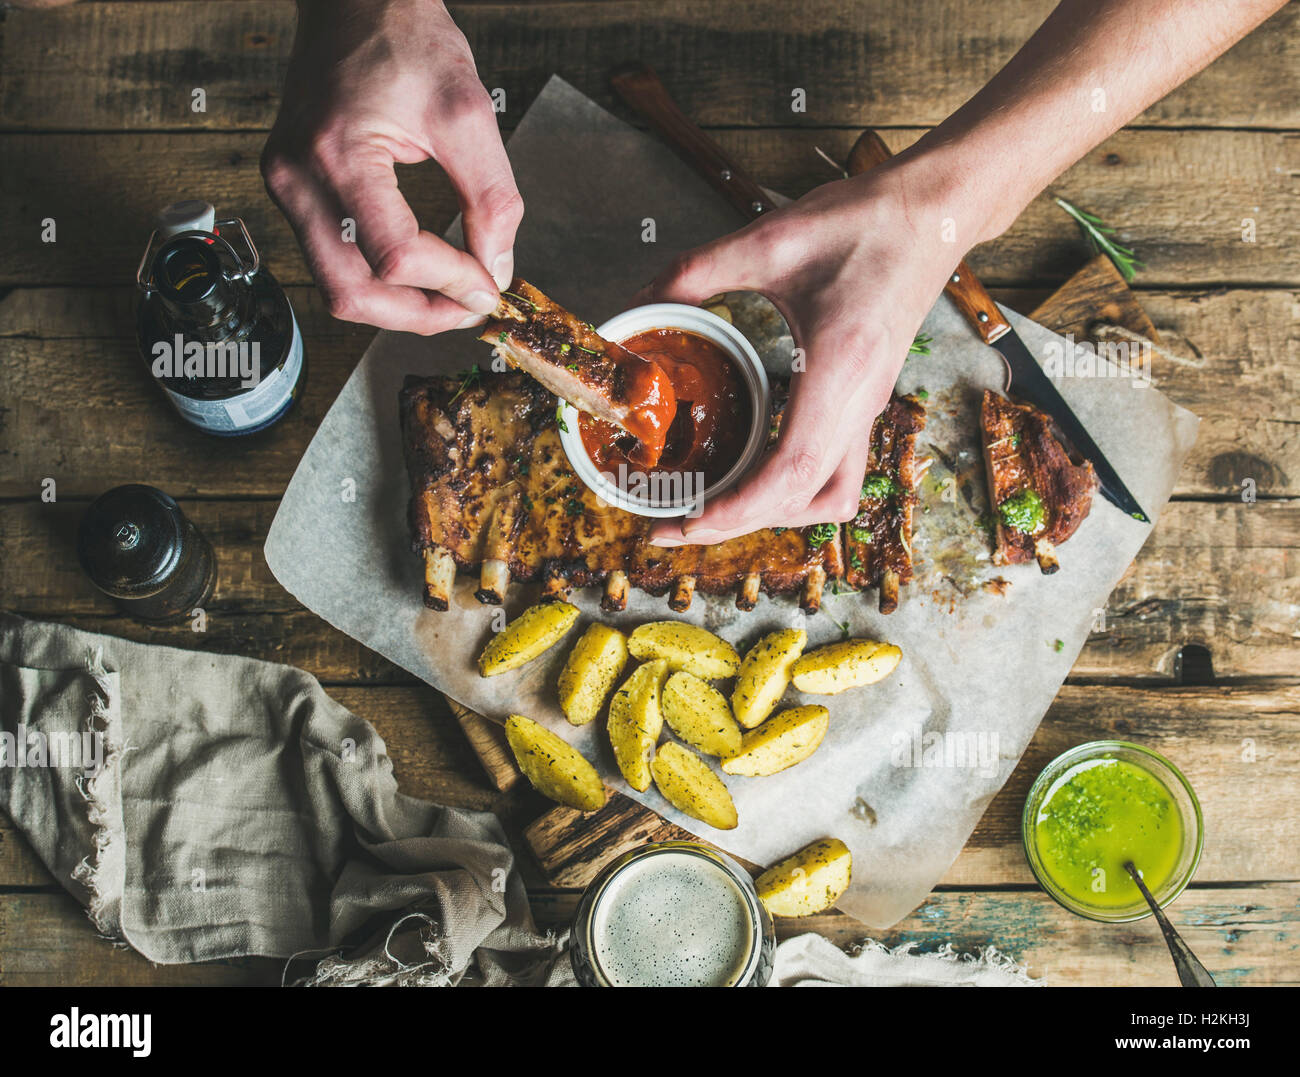 Man eating roasted pork ribs with potato pieces, garlic, rosemary and green herb sauce on rustic wooden table. Man' - Stock Image